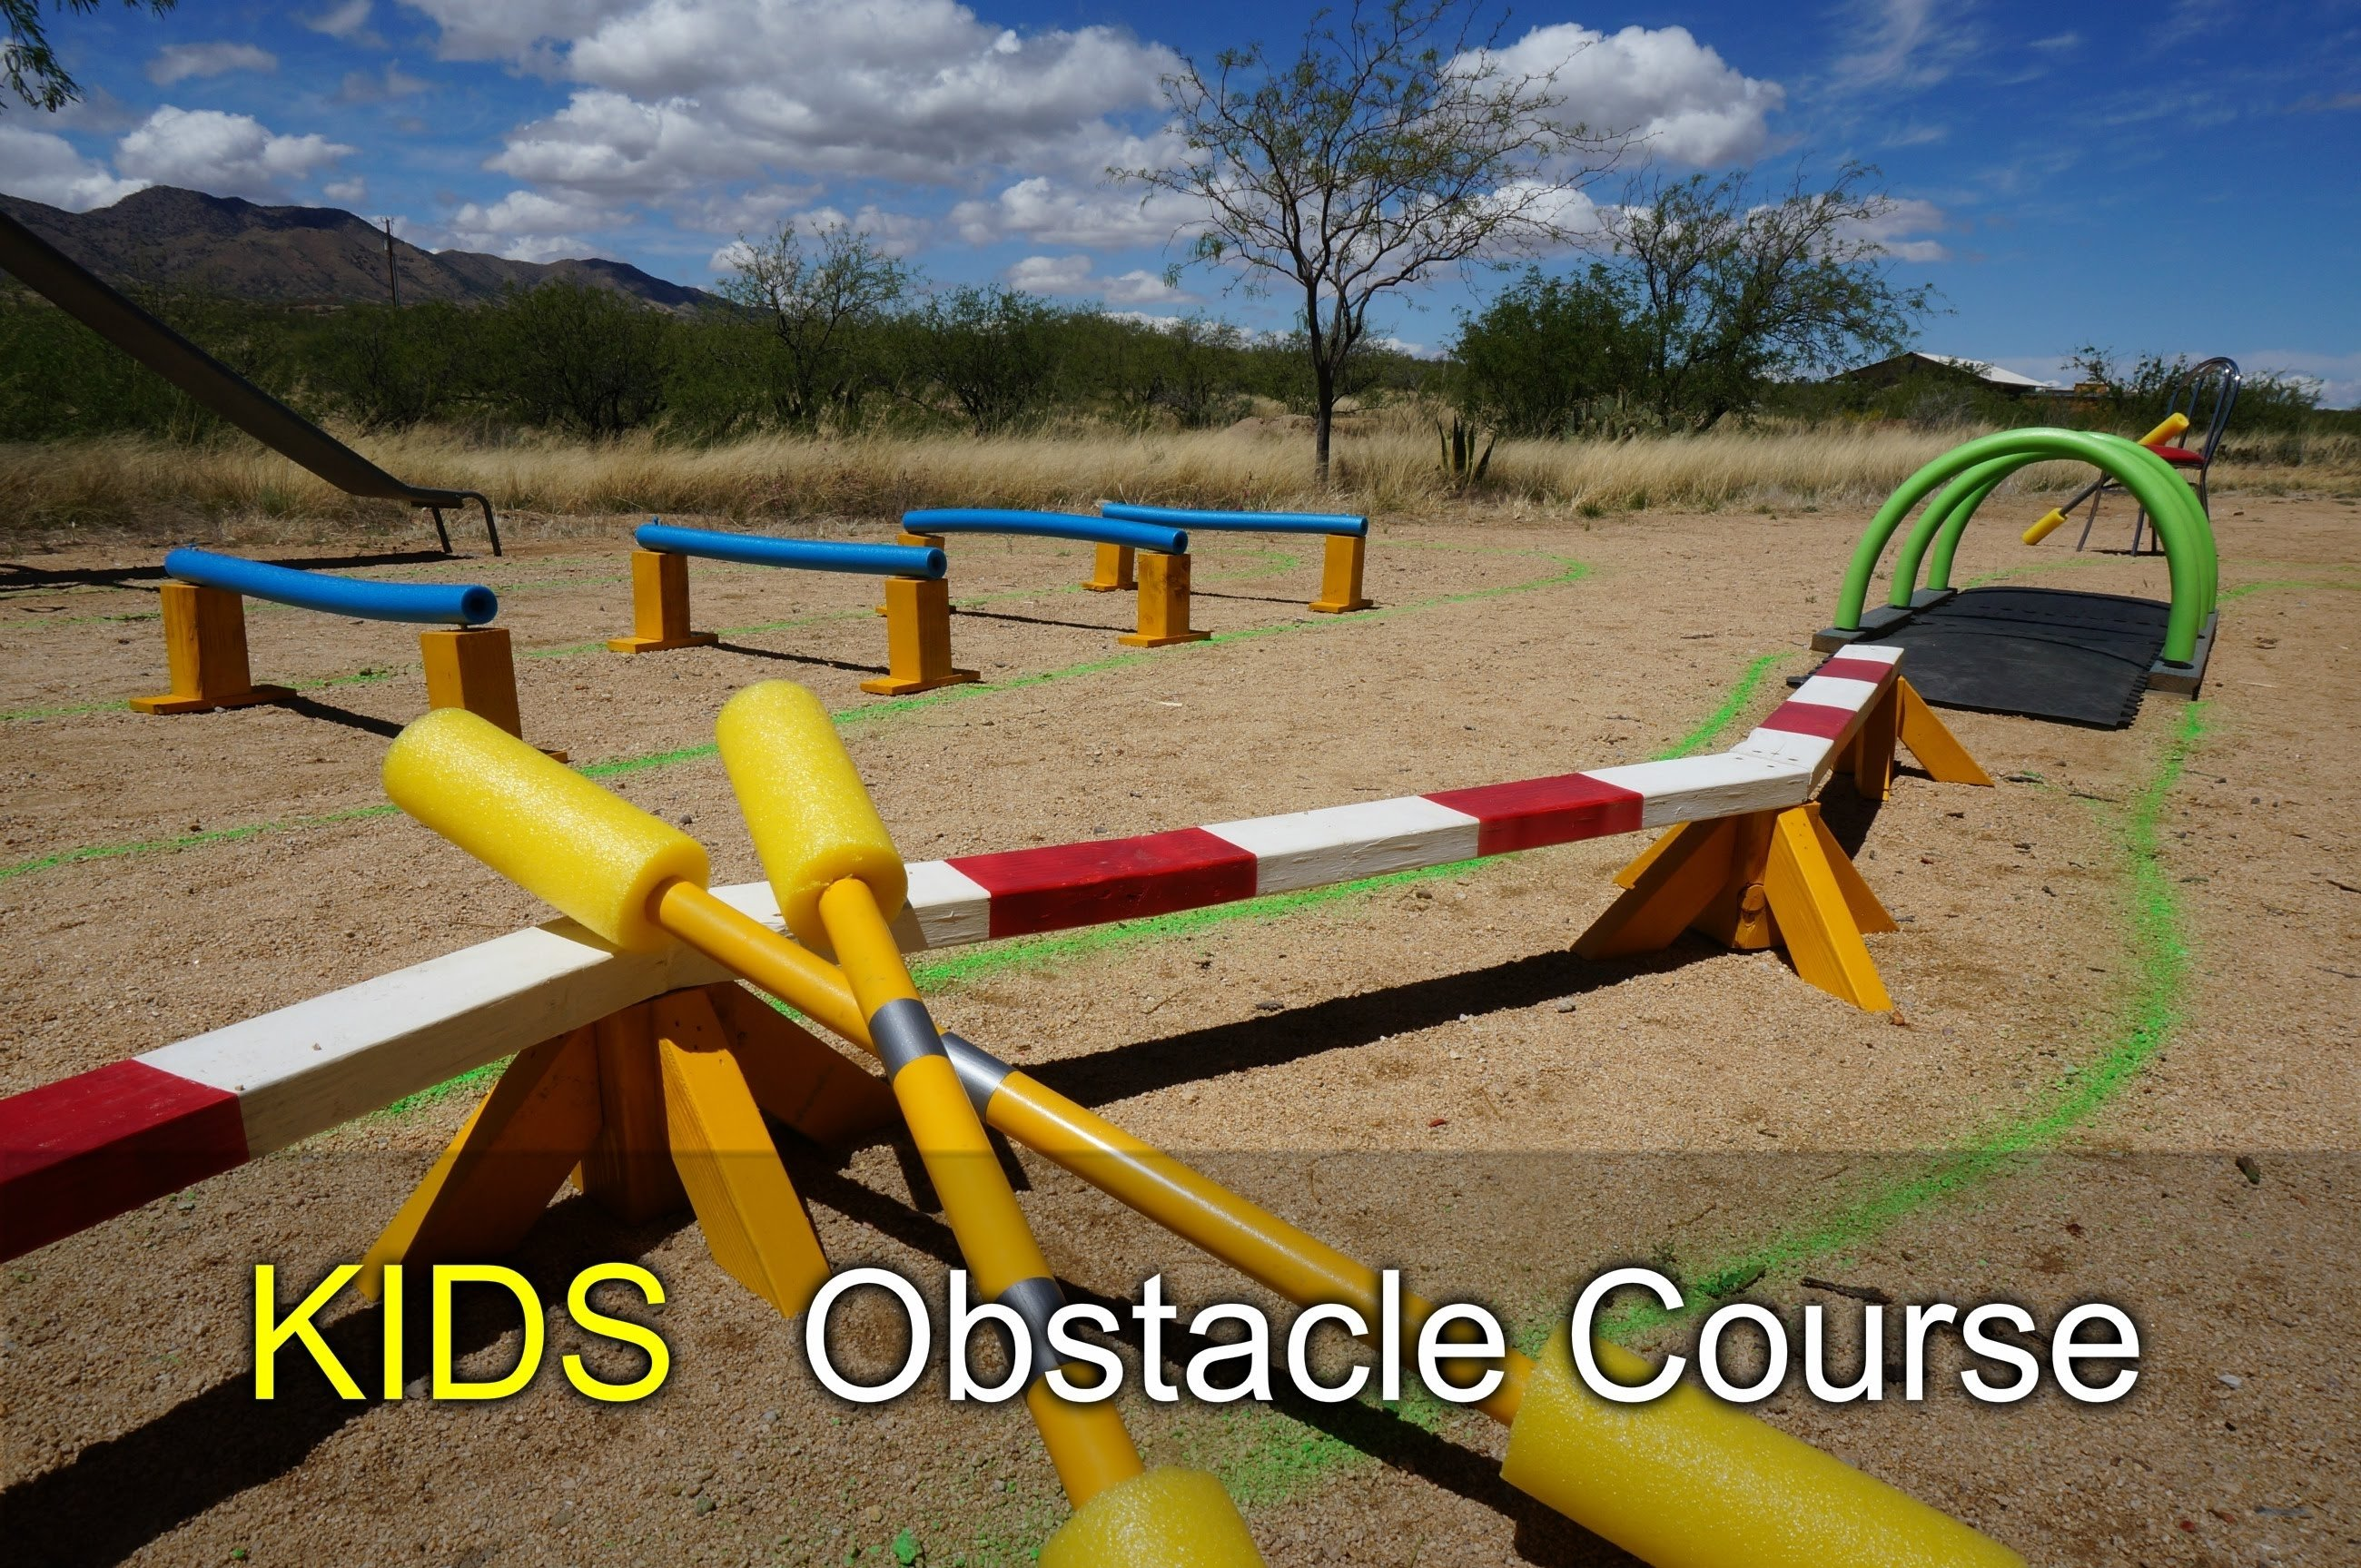 10 Fantastic Fun Obstacle Course Ideas For Adults kids obstacle course how to with scrap wood and pool noodles youtube 2021